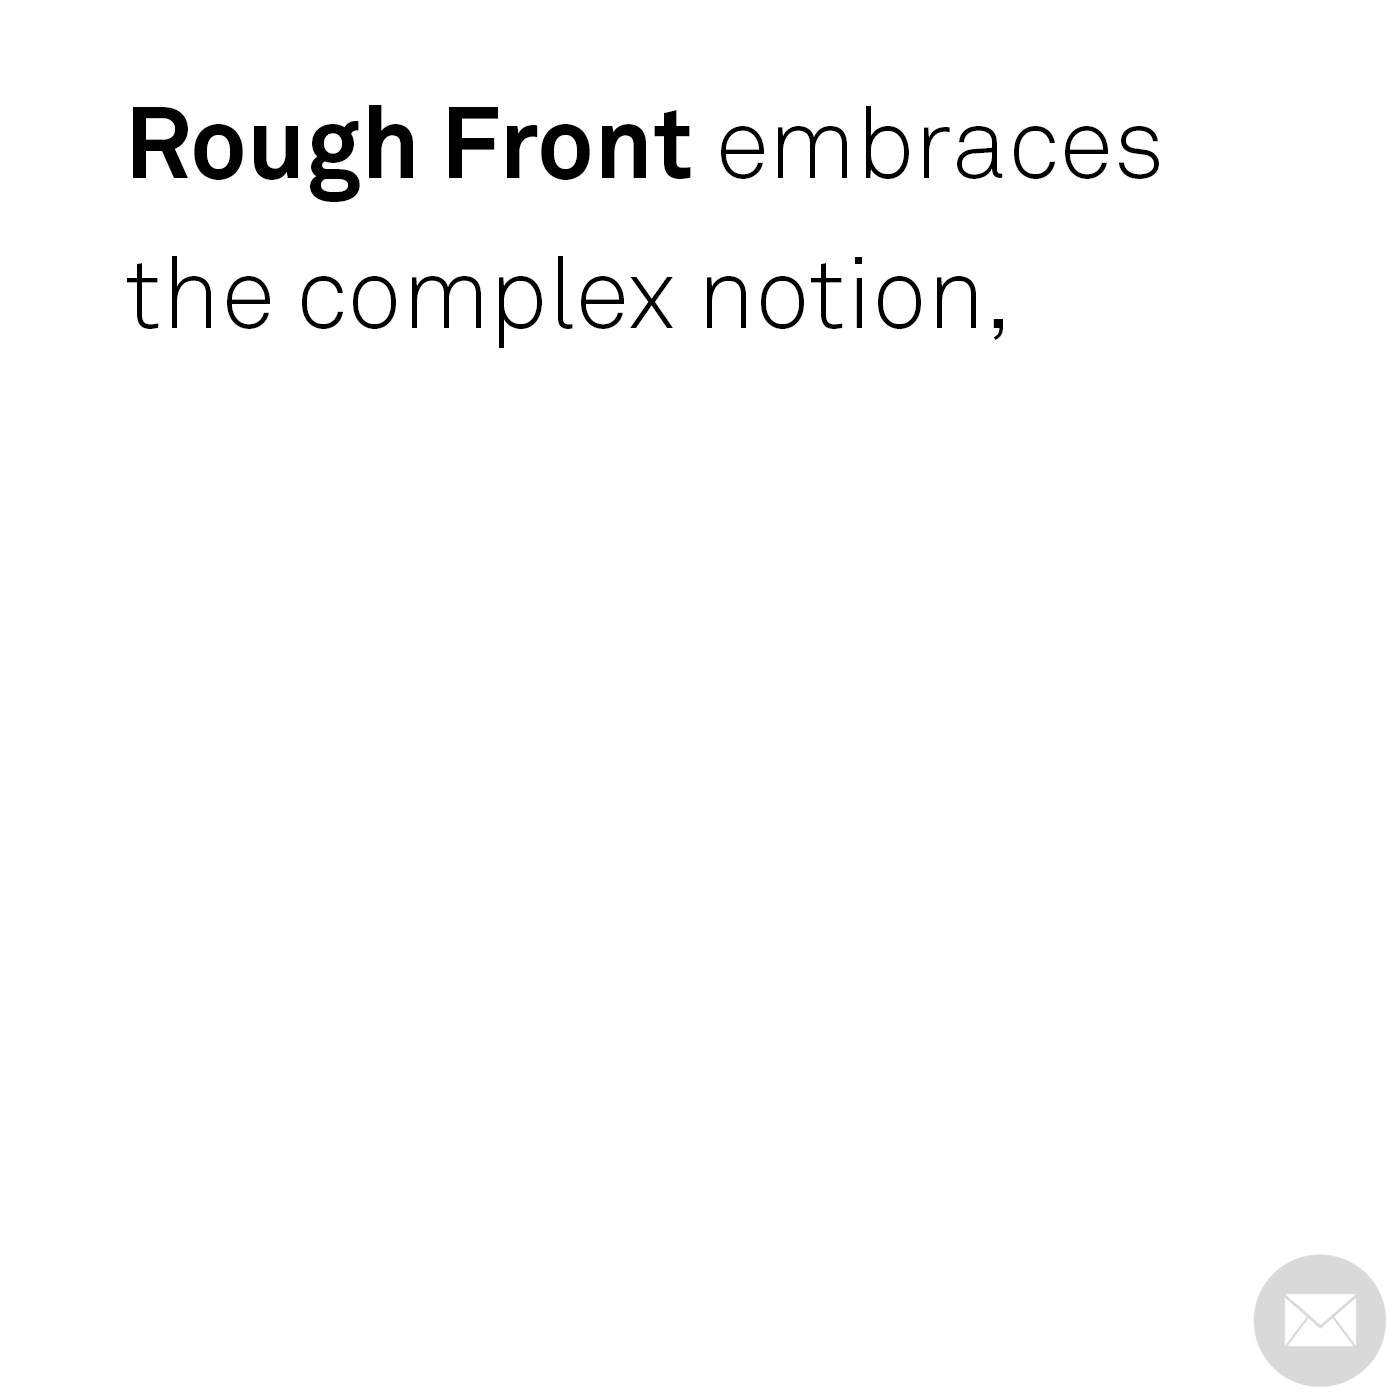 Rough Front is -envelope- 051.jpg